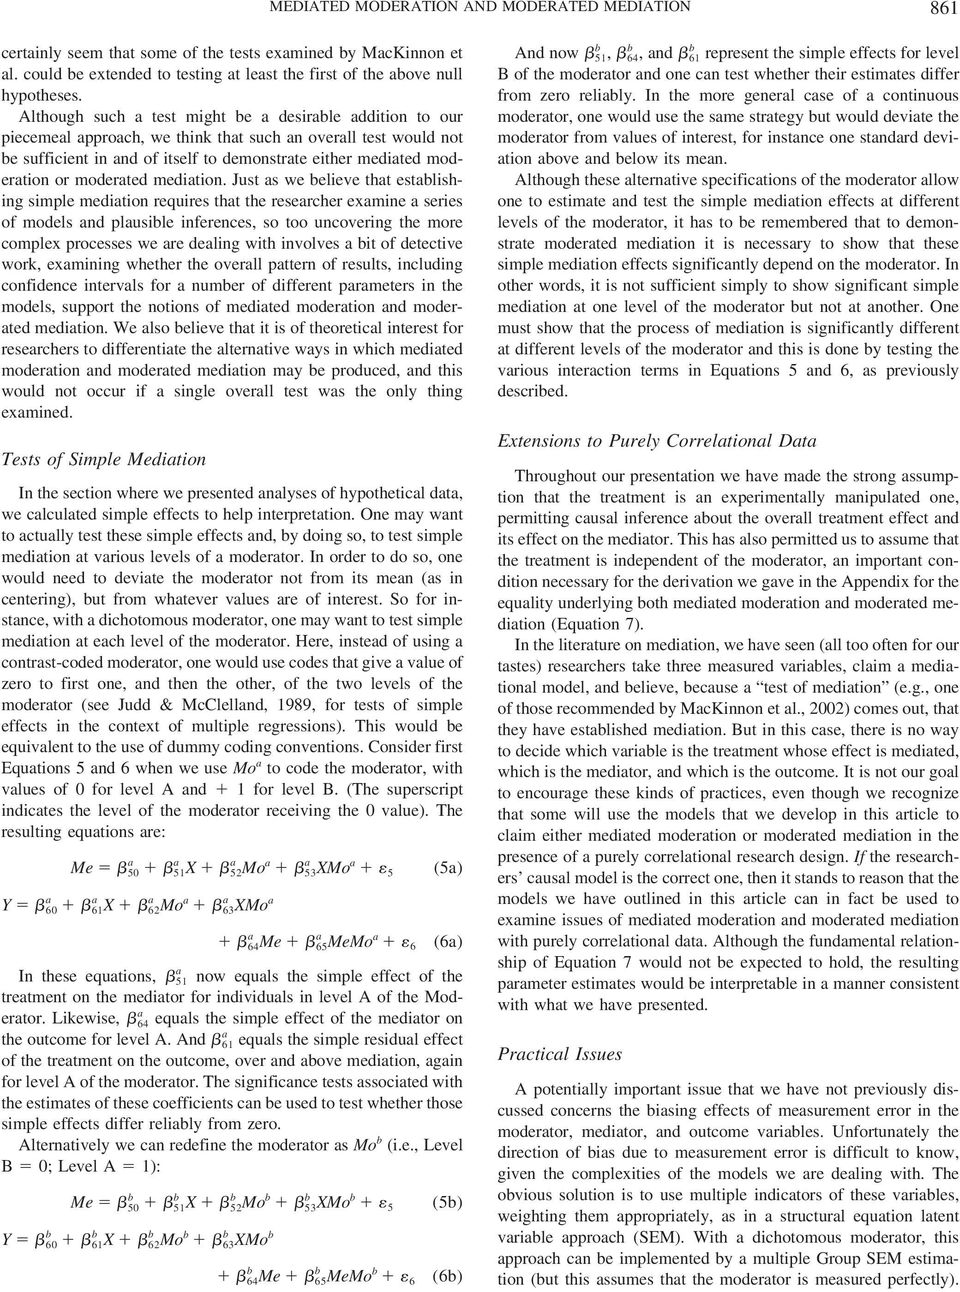 moderated mediation.